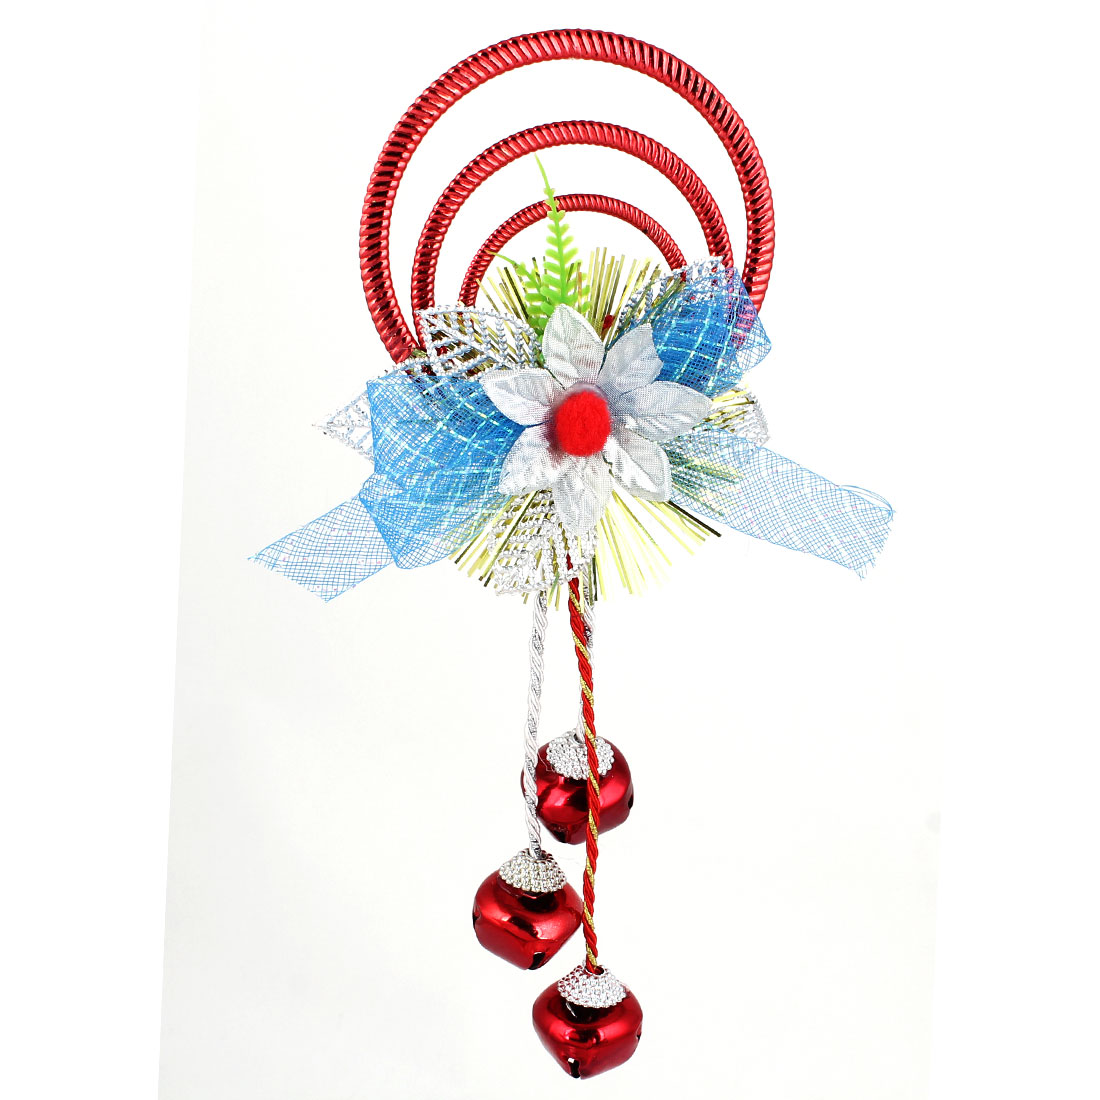 Blue Bowknot Detail Plastic Rings Metal Bell Pendant Burgundy for Christmas Xmas Tree Decor